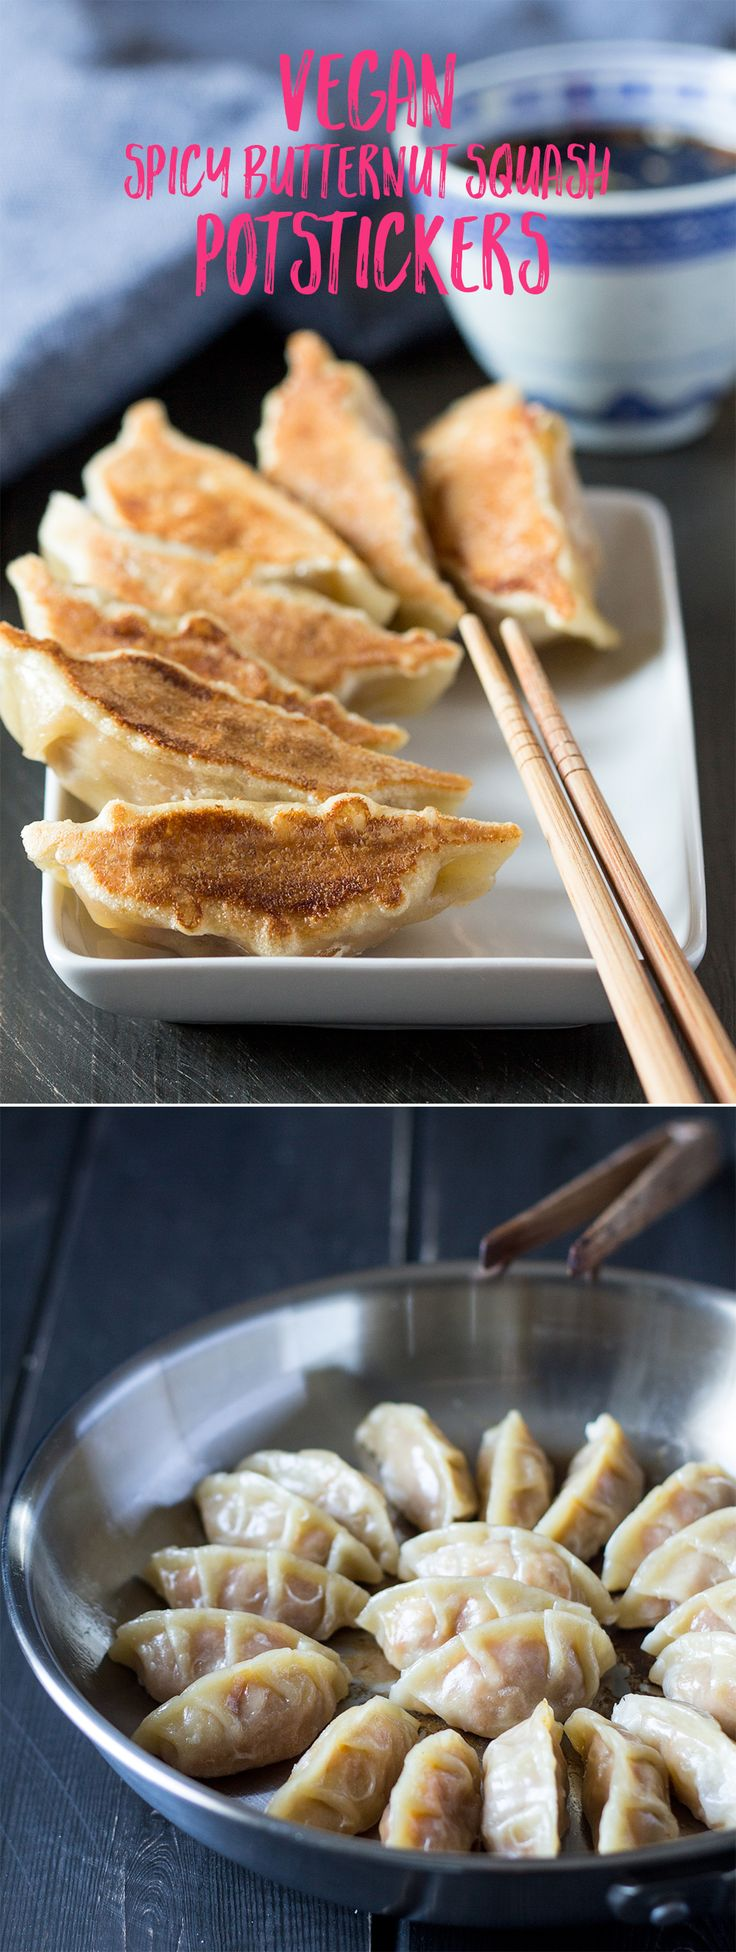 Who does not like chinese potstickers with crispy undersides and delicious and filling? These beauties contain a spicy butternut squash filling. To die for!